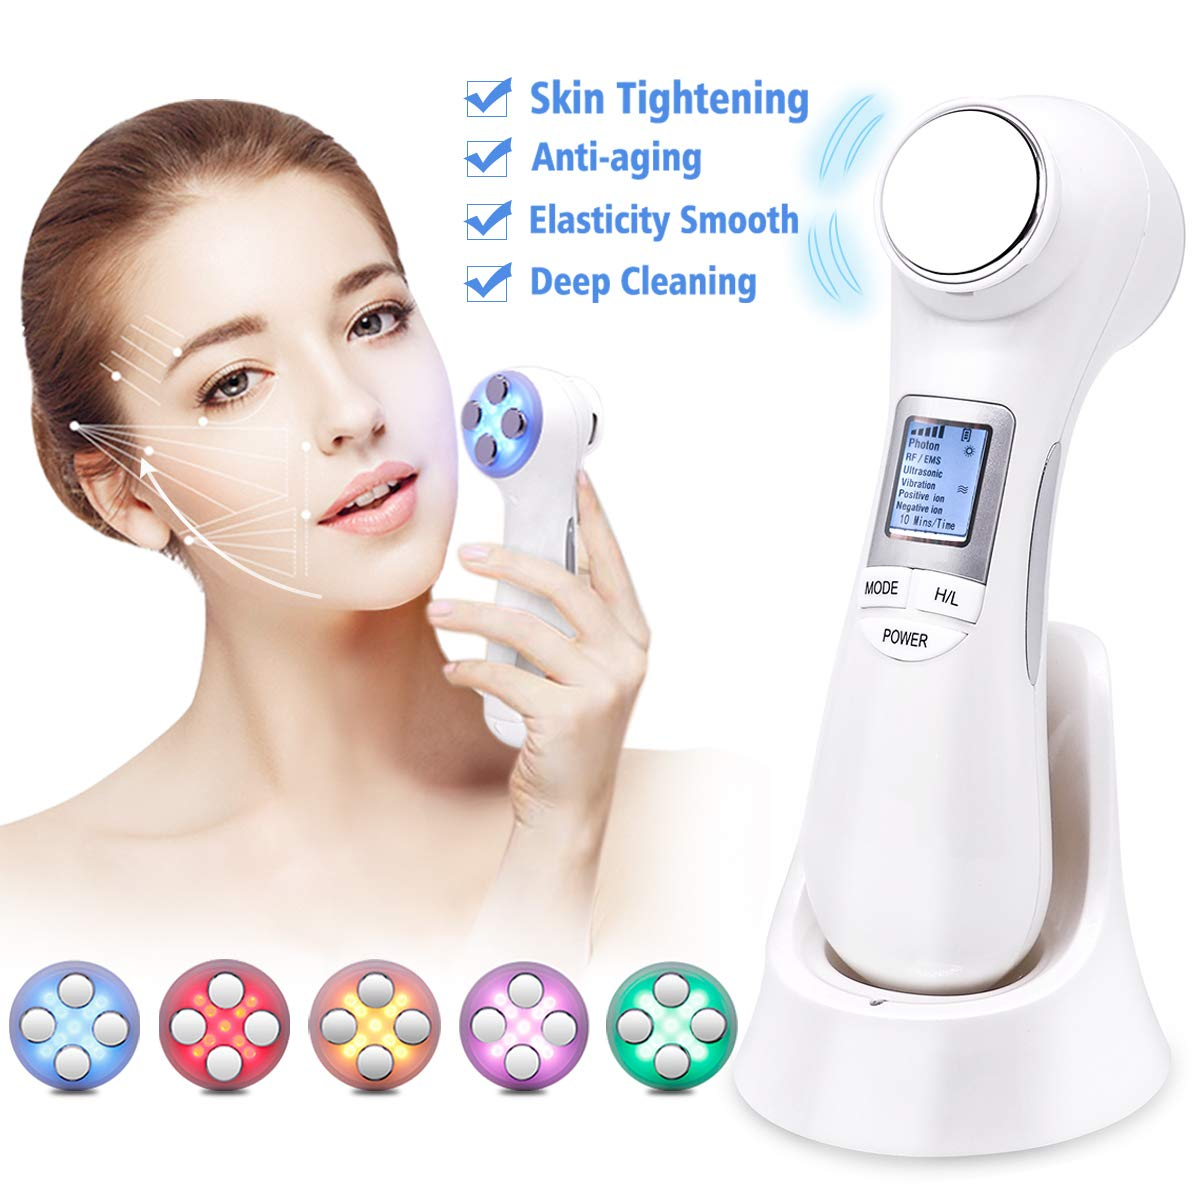 Face Firming Machine Multifunctional Skin Tightening Device High Frequency Vibration Facial Machine for Lifting Whitening Deep Cleaning Color Lights Portable Rechargeable Skin Care Beauty Instrument